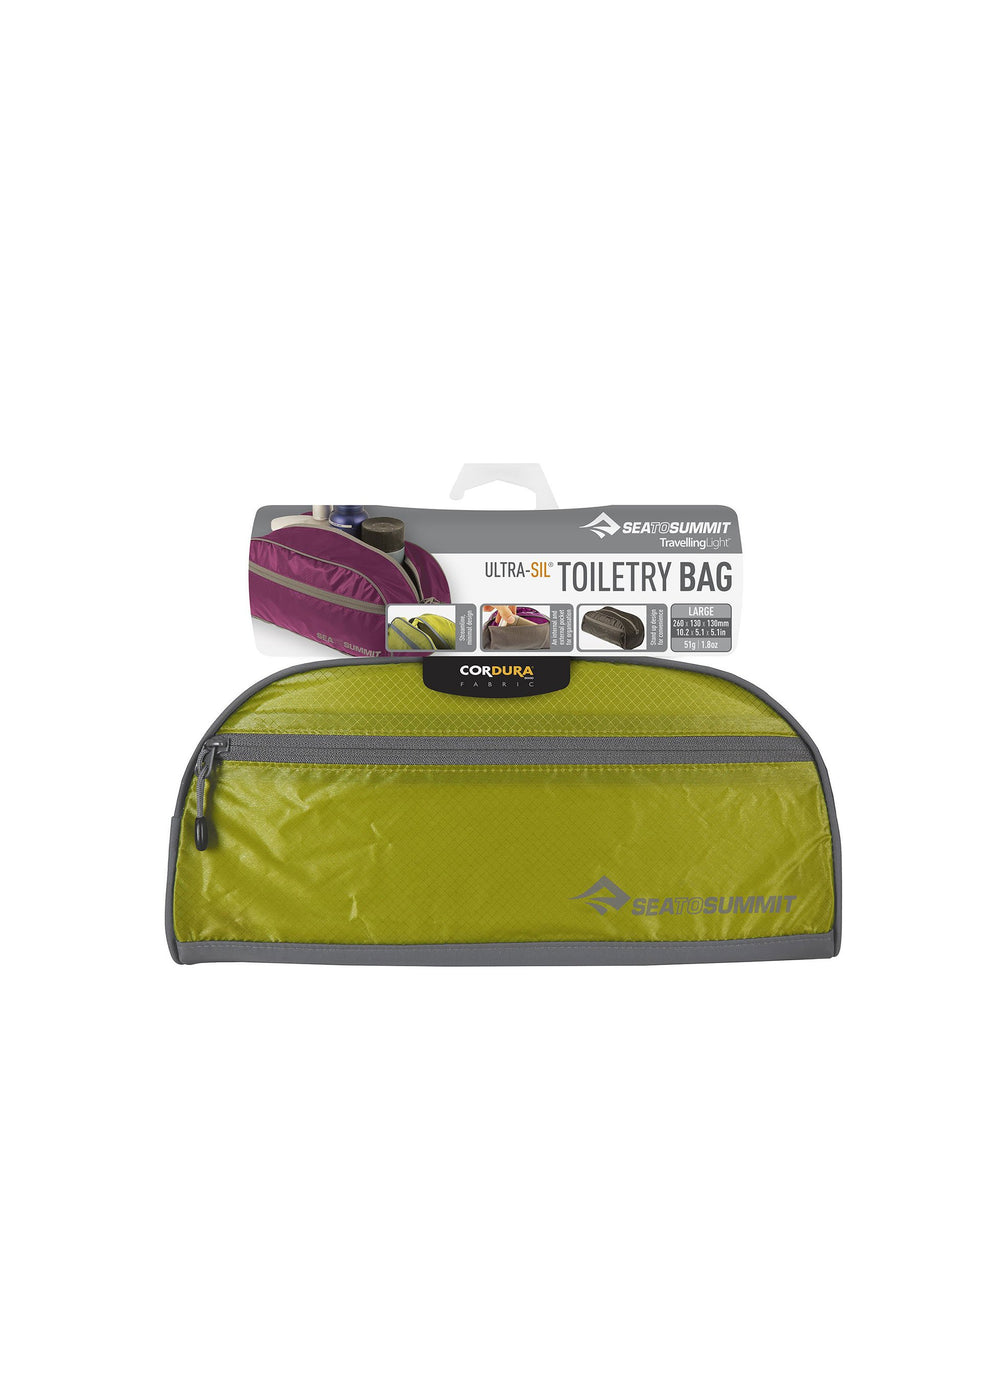 Sea to Summit Ultra-Sil Toiletry Bag